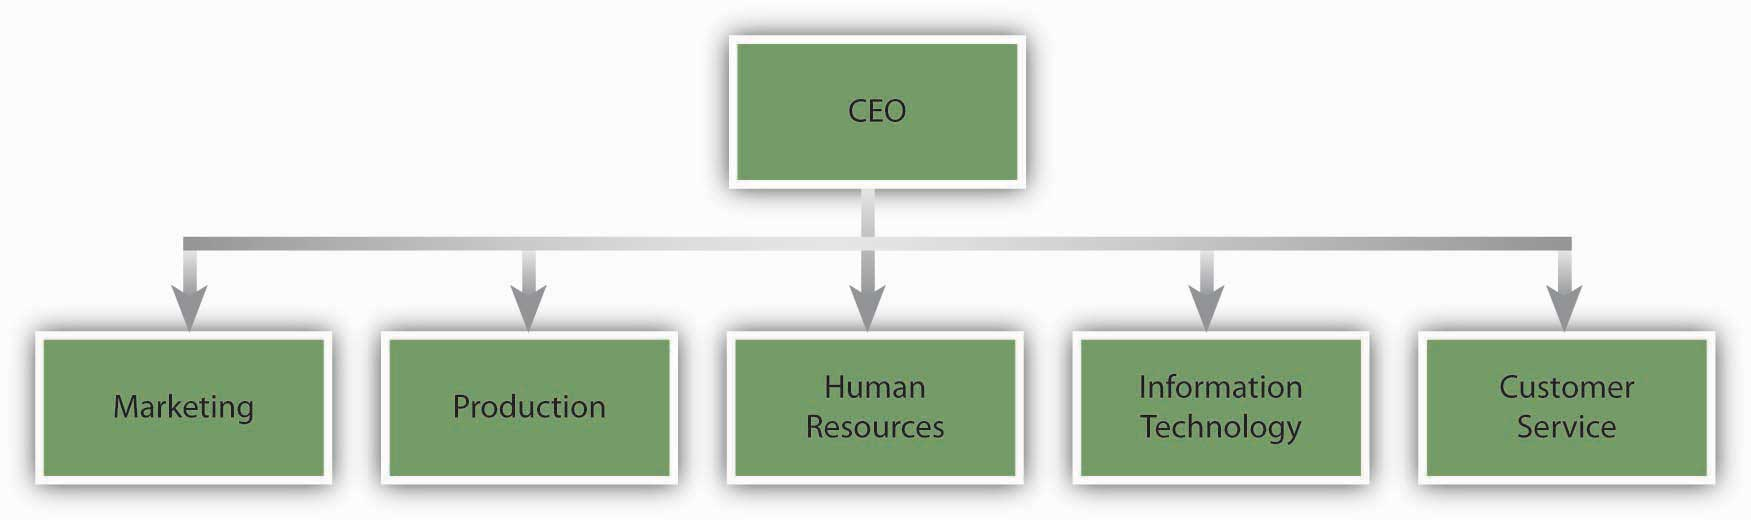 An Example of a Pharmaceutical Company With Functional Departments: Marketing, Production, Human Resources, Information Technology, and Customer Service